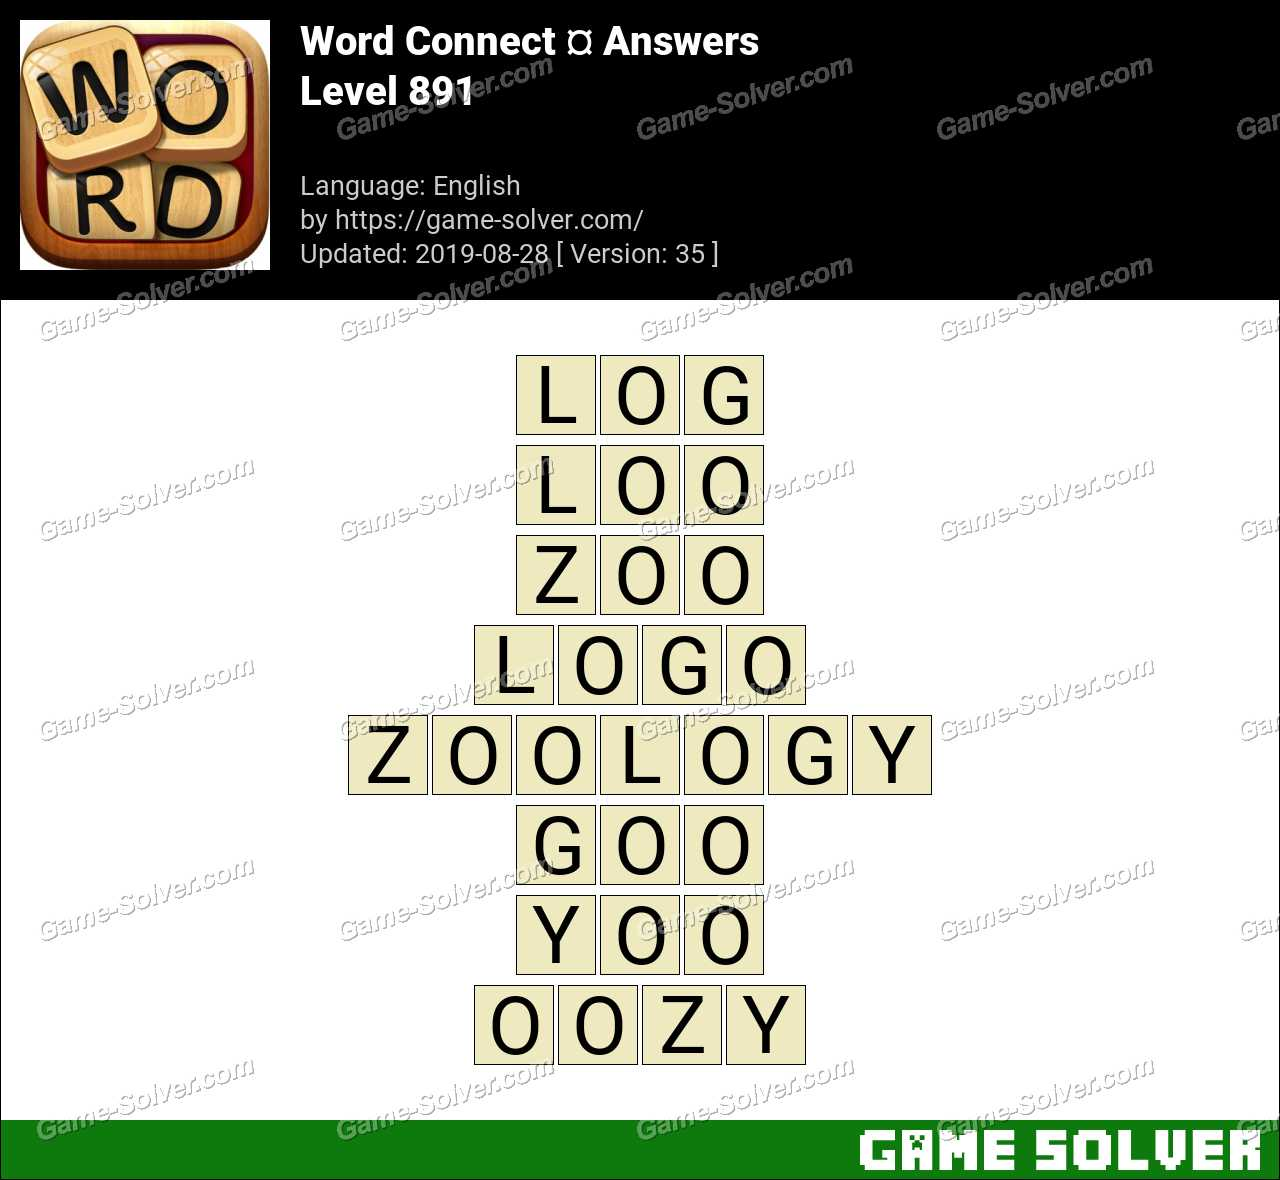 Word Connect Level 891 Answers